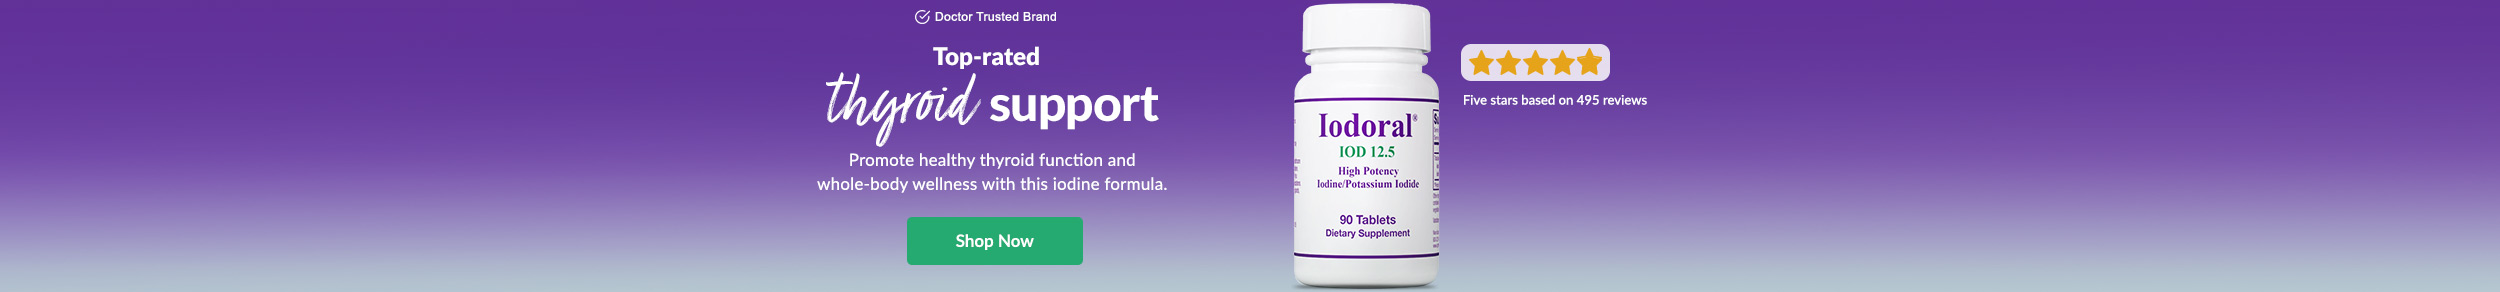 Doctor Trusted Brands: Iodoral by Optimox - Top-rated thyroid support. Promote healthy thyroid function and whole-body wellness with this iodine formula. SHOP NOW